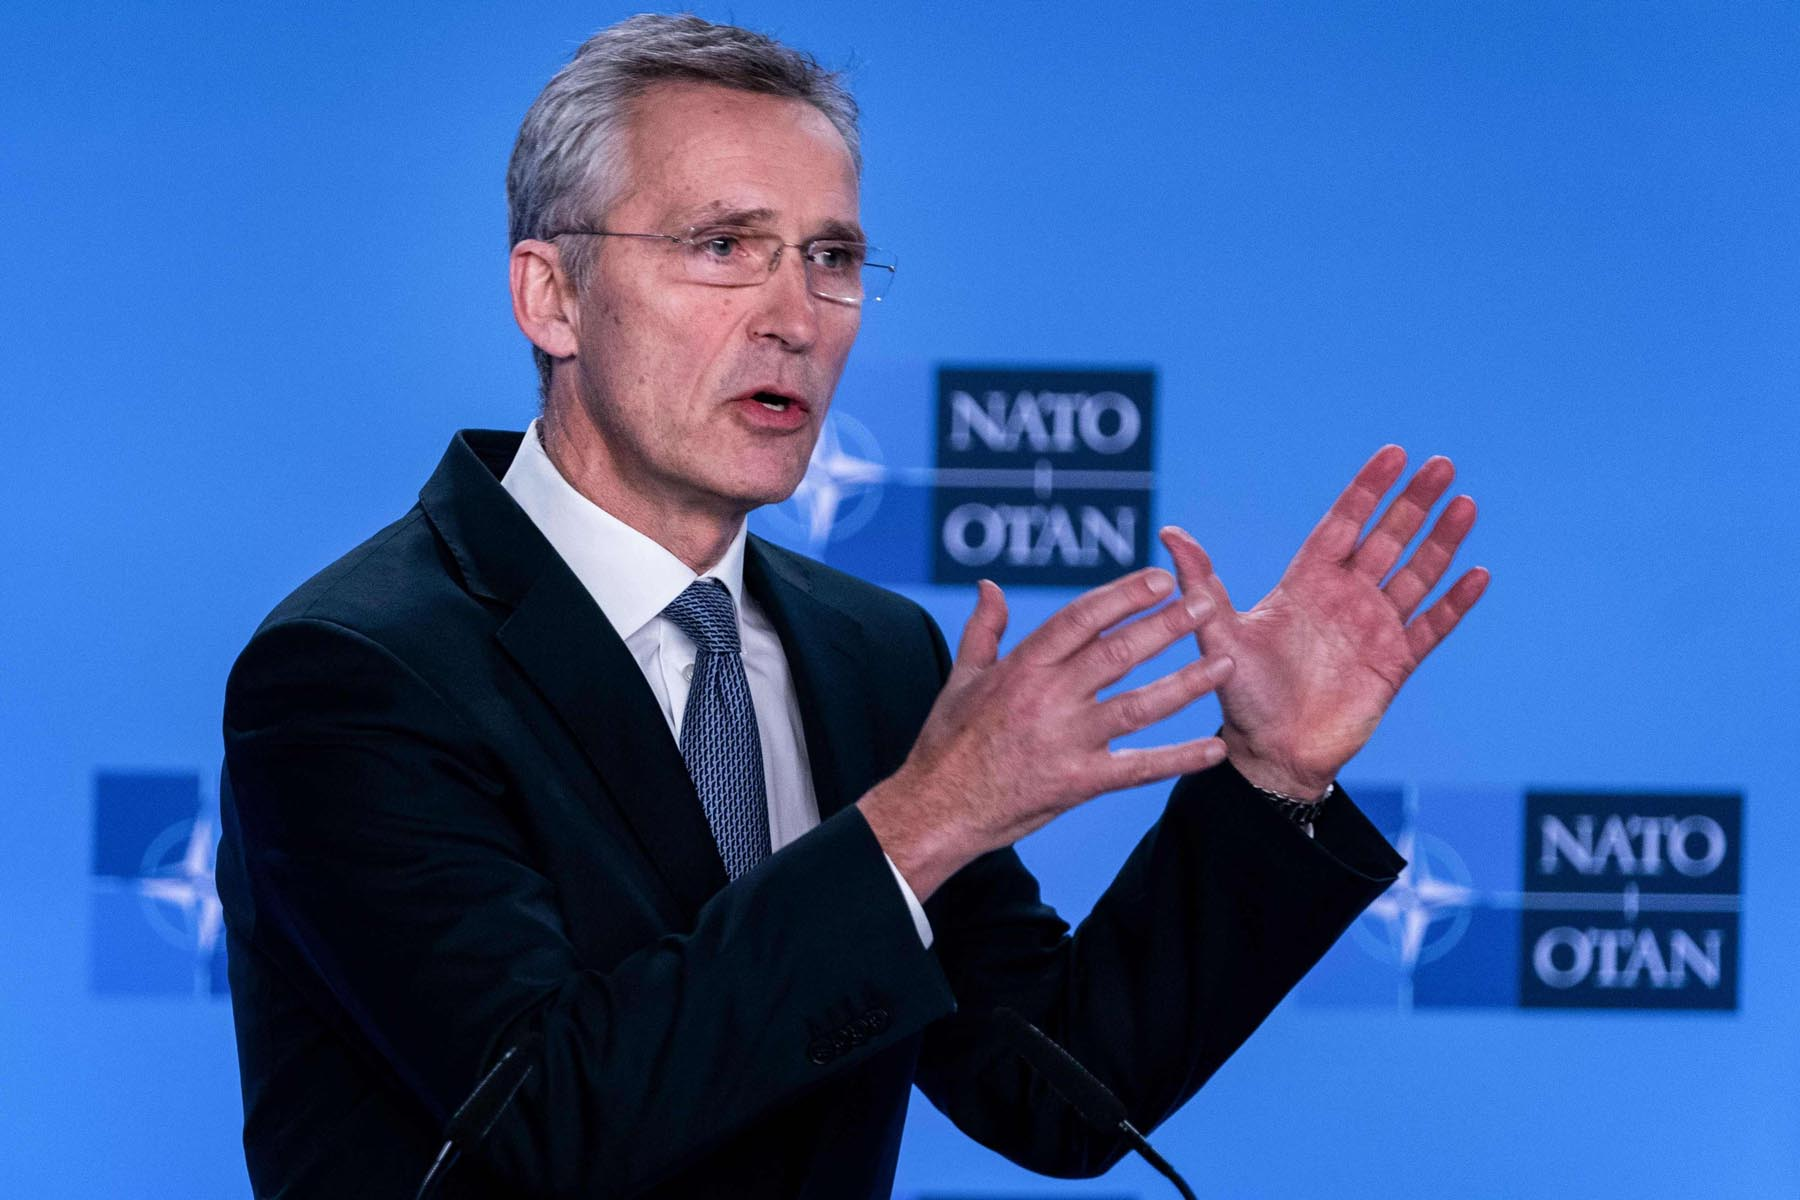 NATO Secretary-General Jens  Stoltenberg delivers a speech during a news conference at the end  of the North Atlantic Council meeting focused on the situation concerning Iran, at NATO Headquarters in Brussels, January 6.      (AFP)